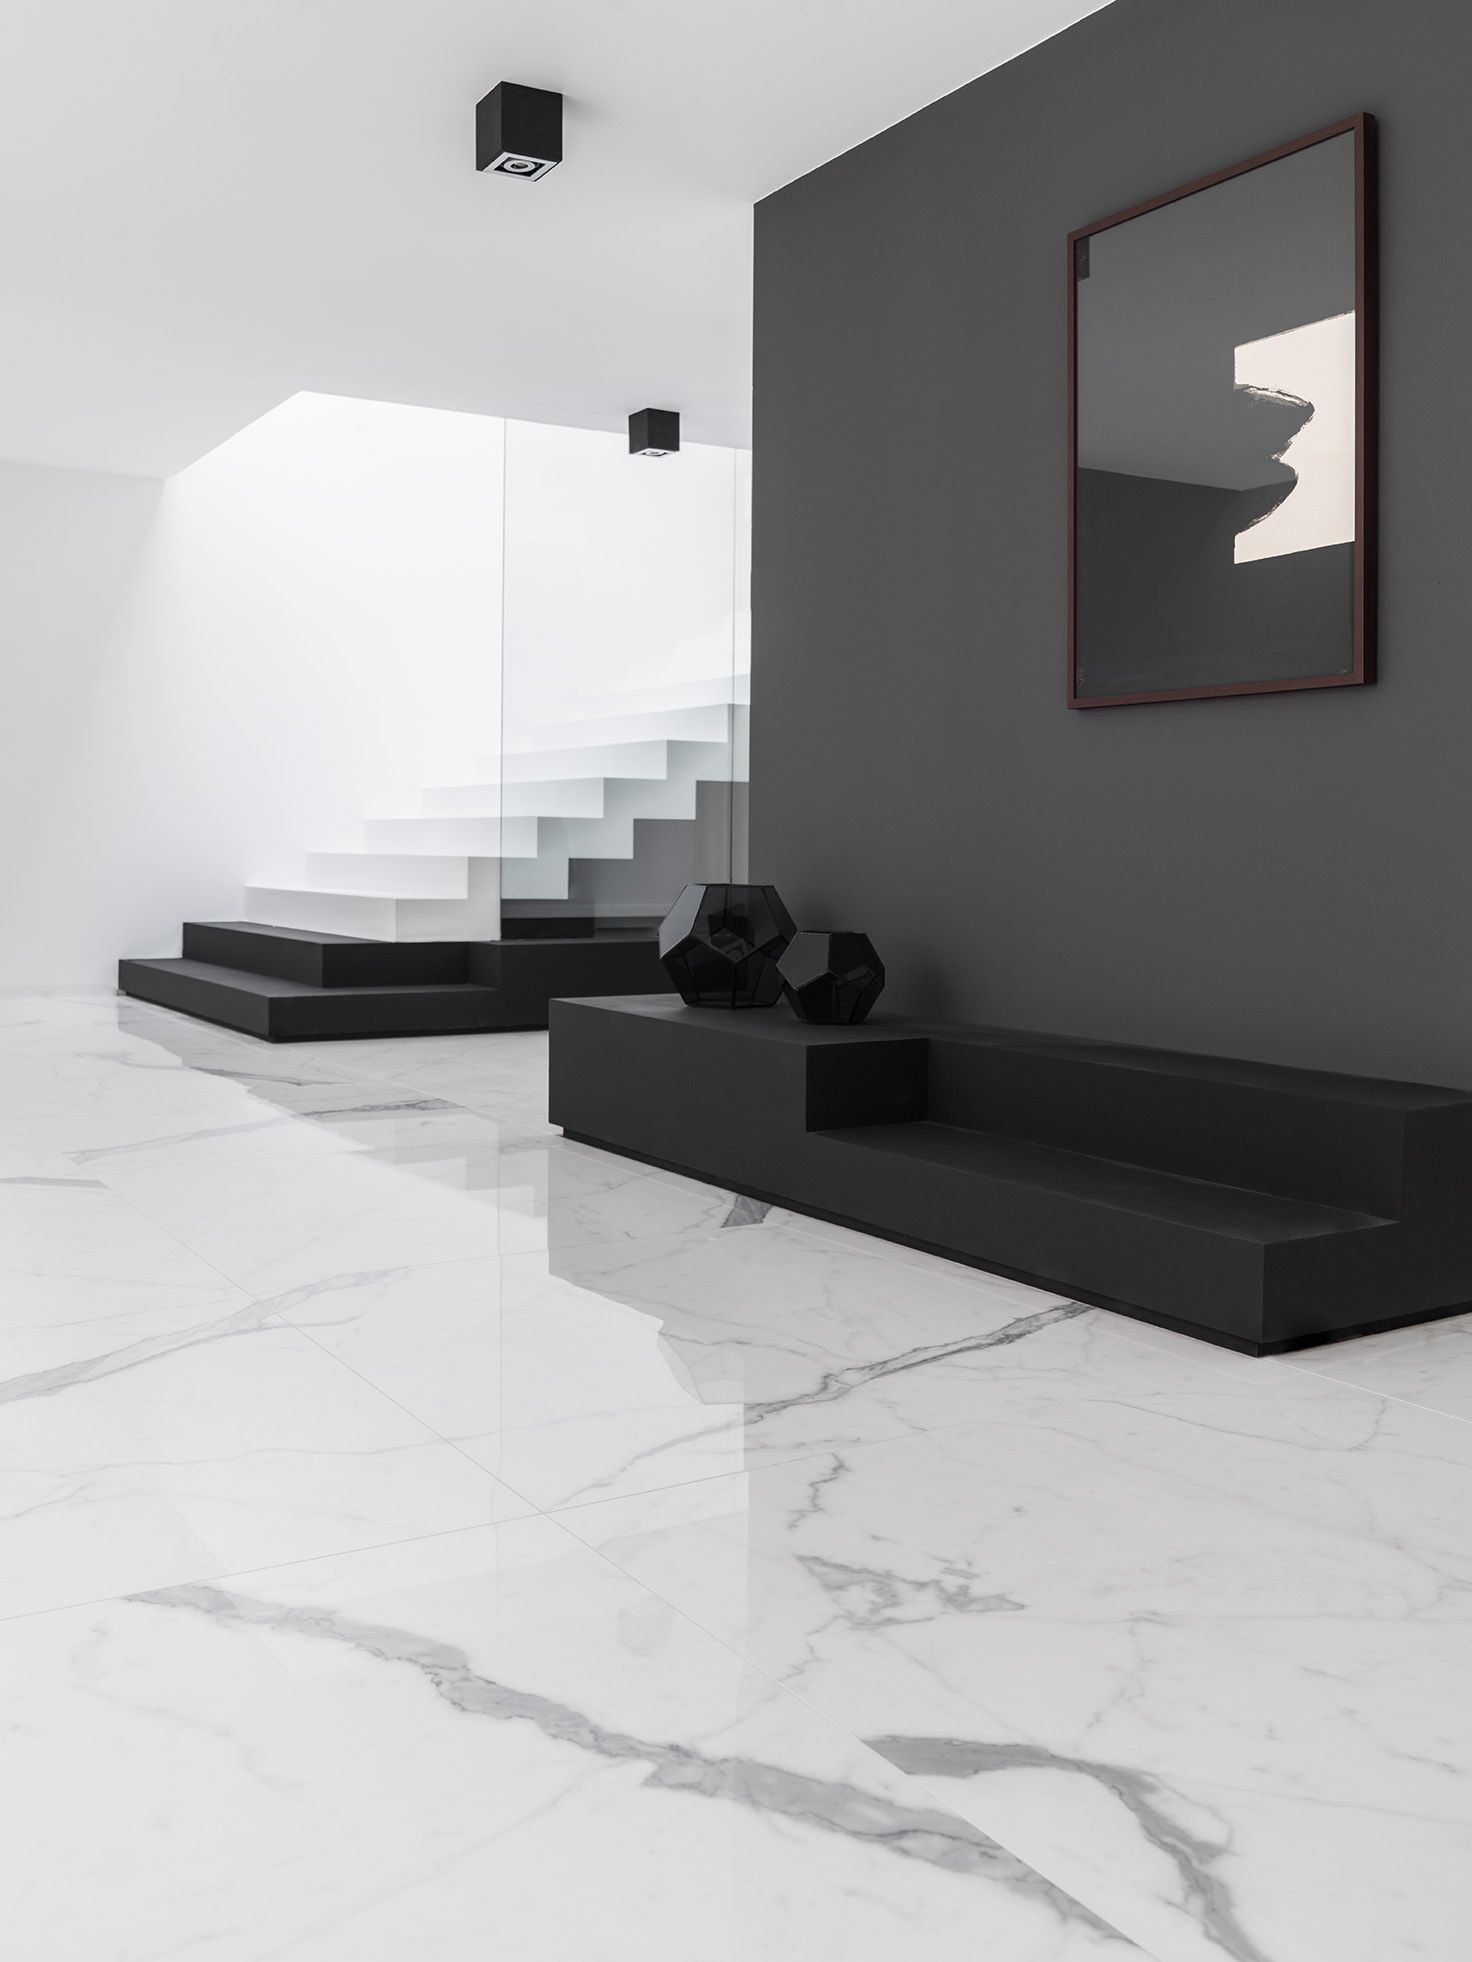 The Marble Floor Contrasts Nicely Against The Solid Black Wall While